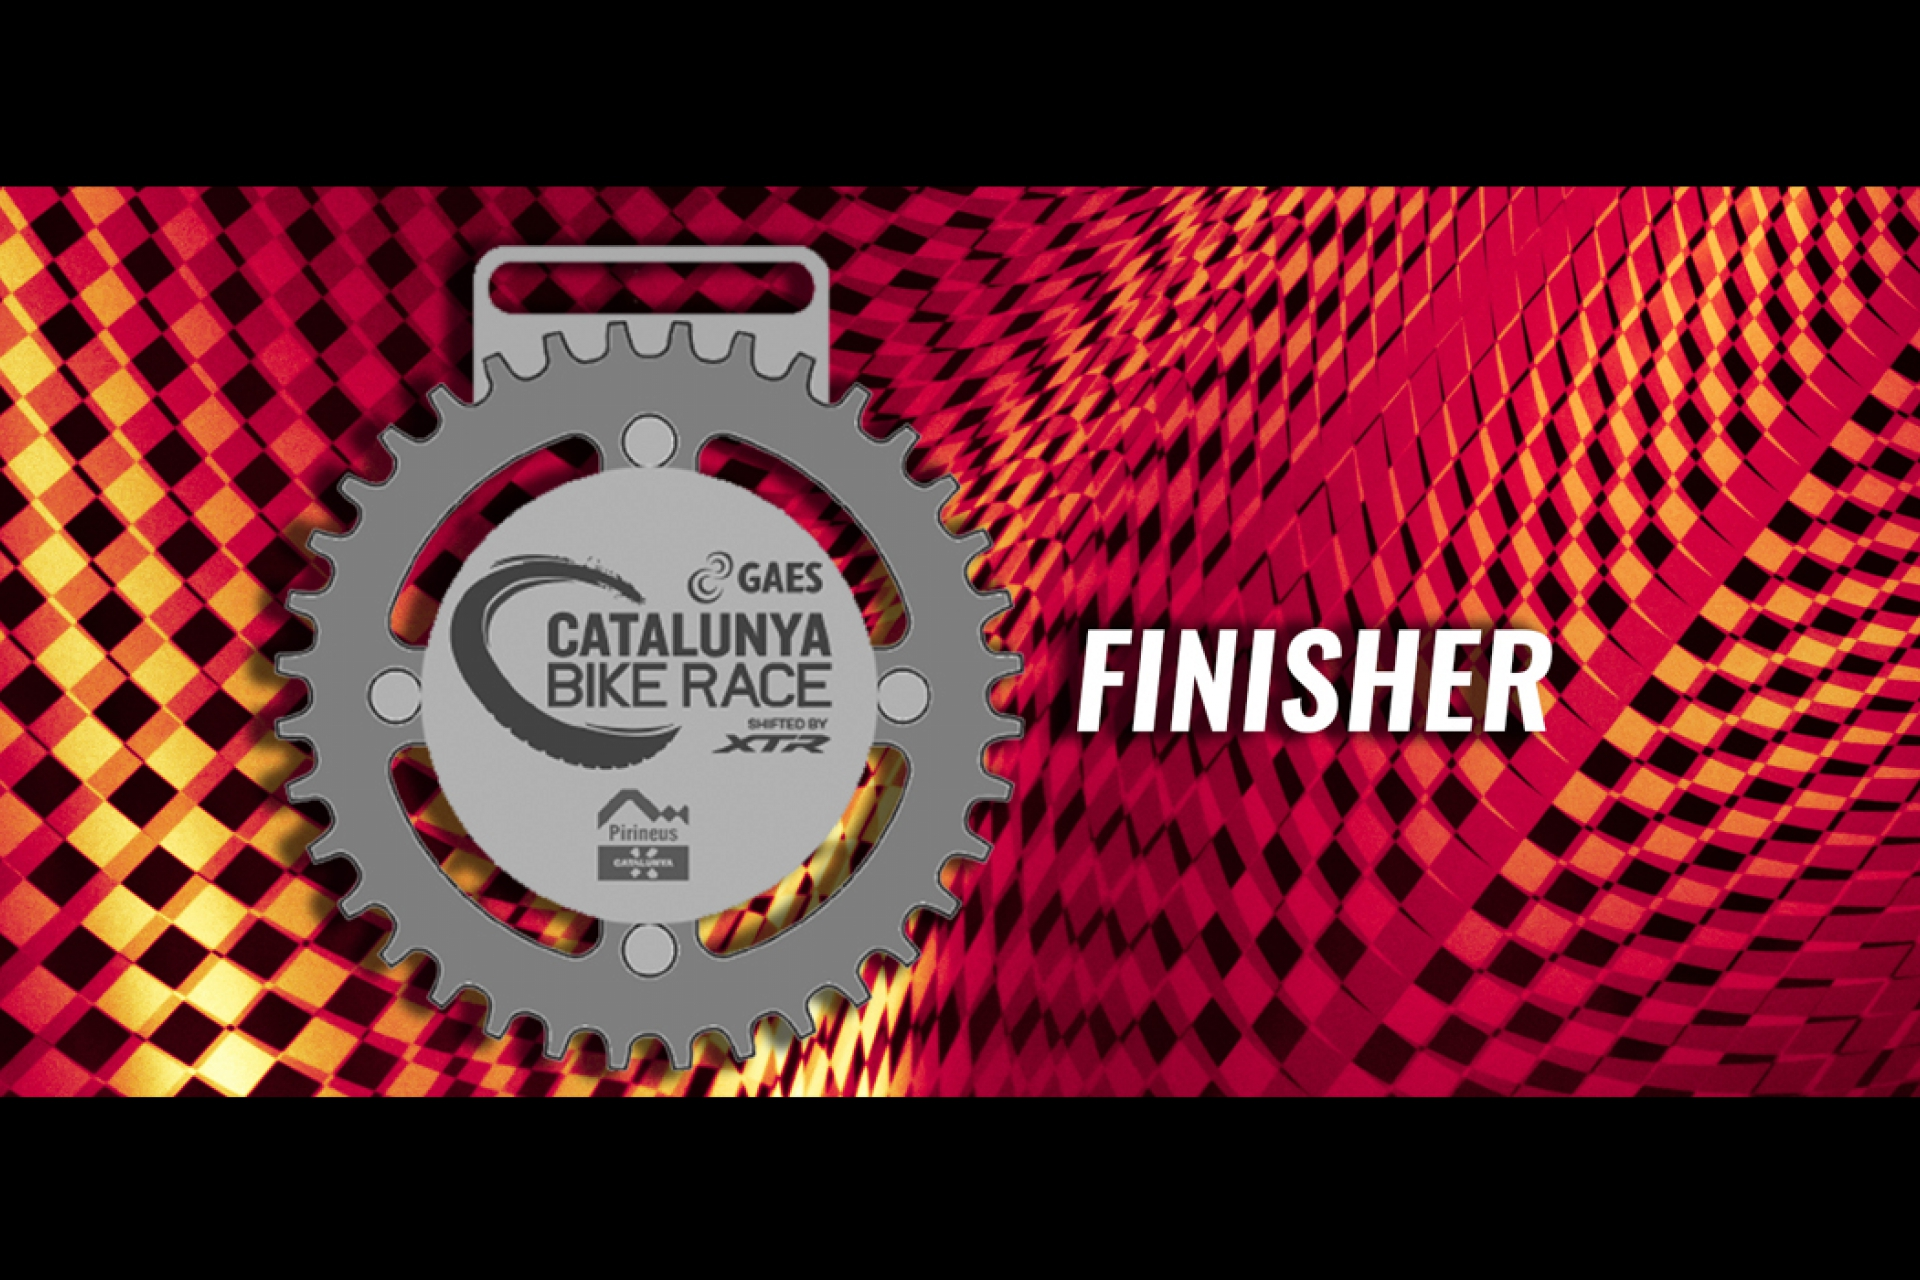 Penja't la medalla de Finisher!